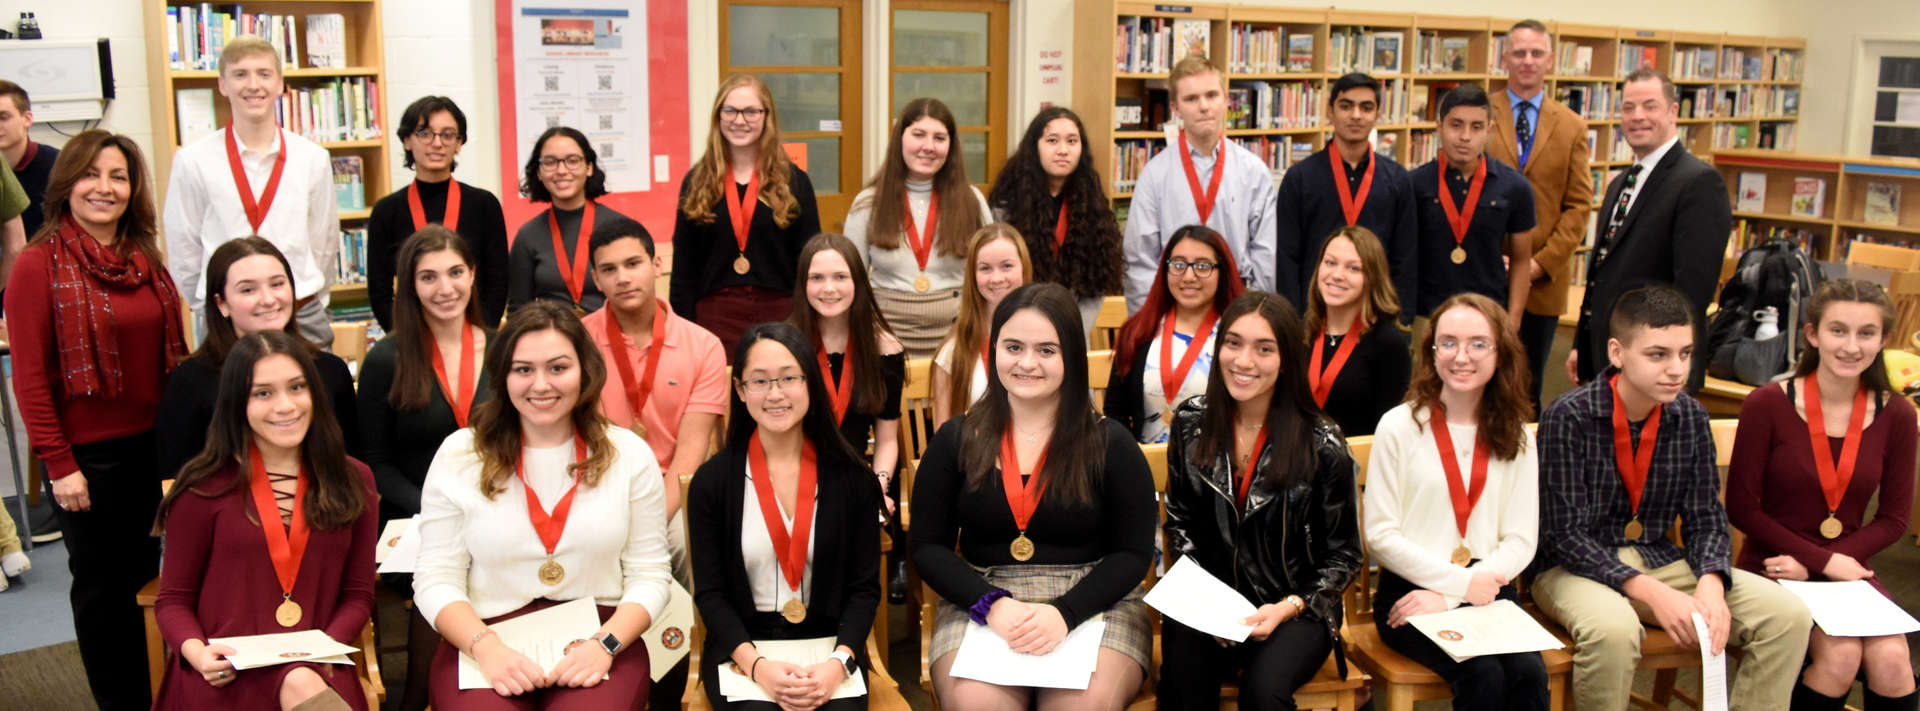 24 students and several teachers pose for photo after Spanish honor society induction